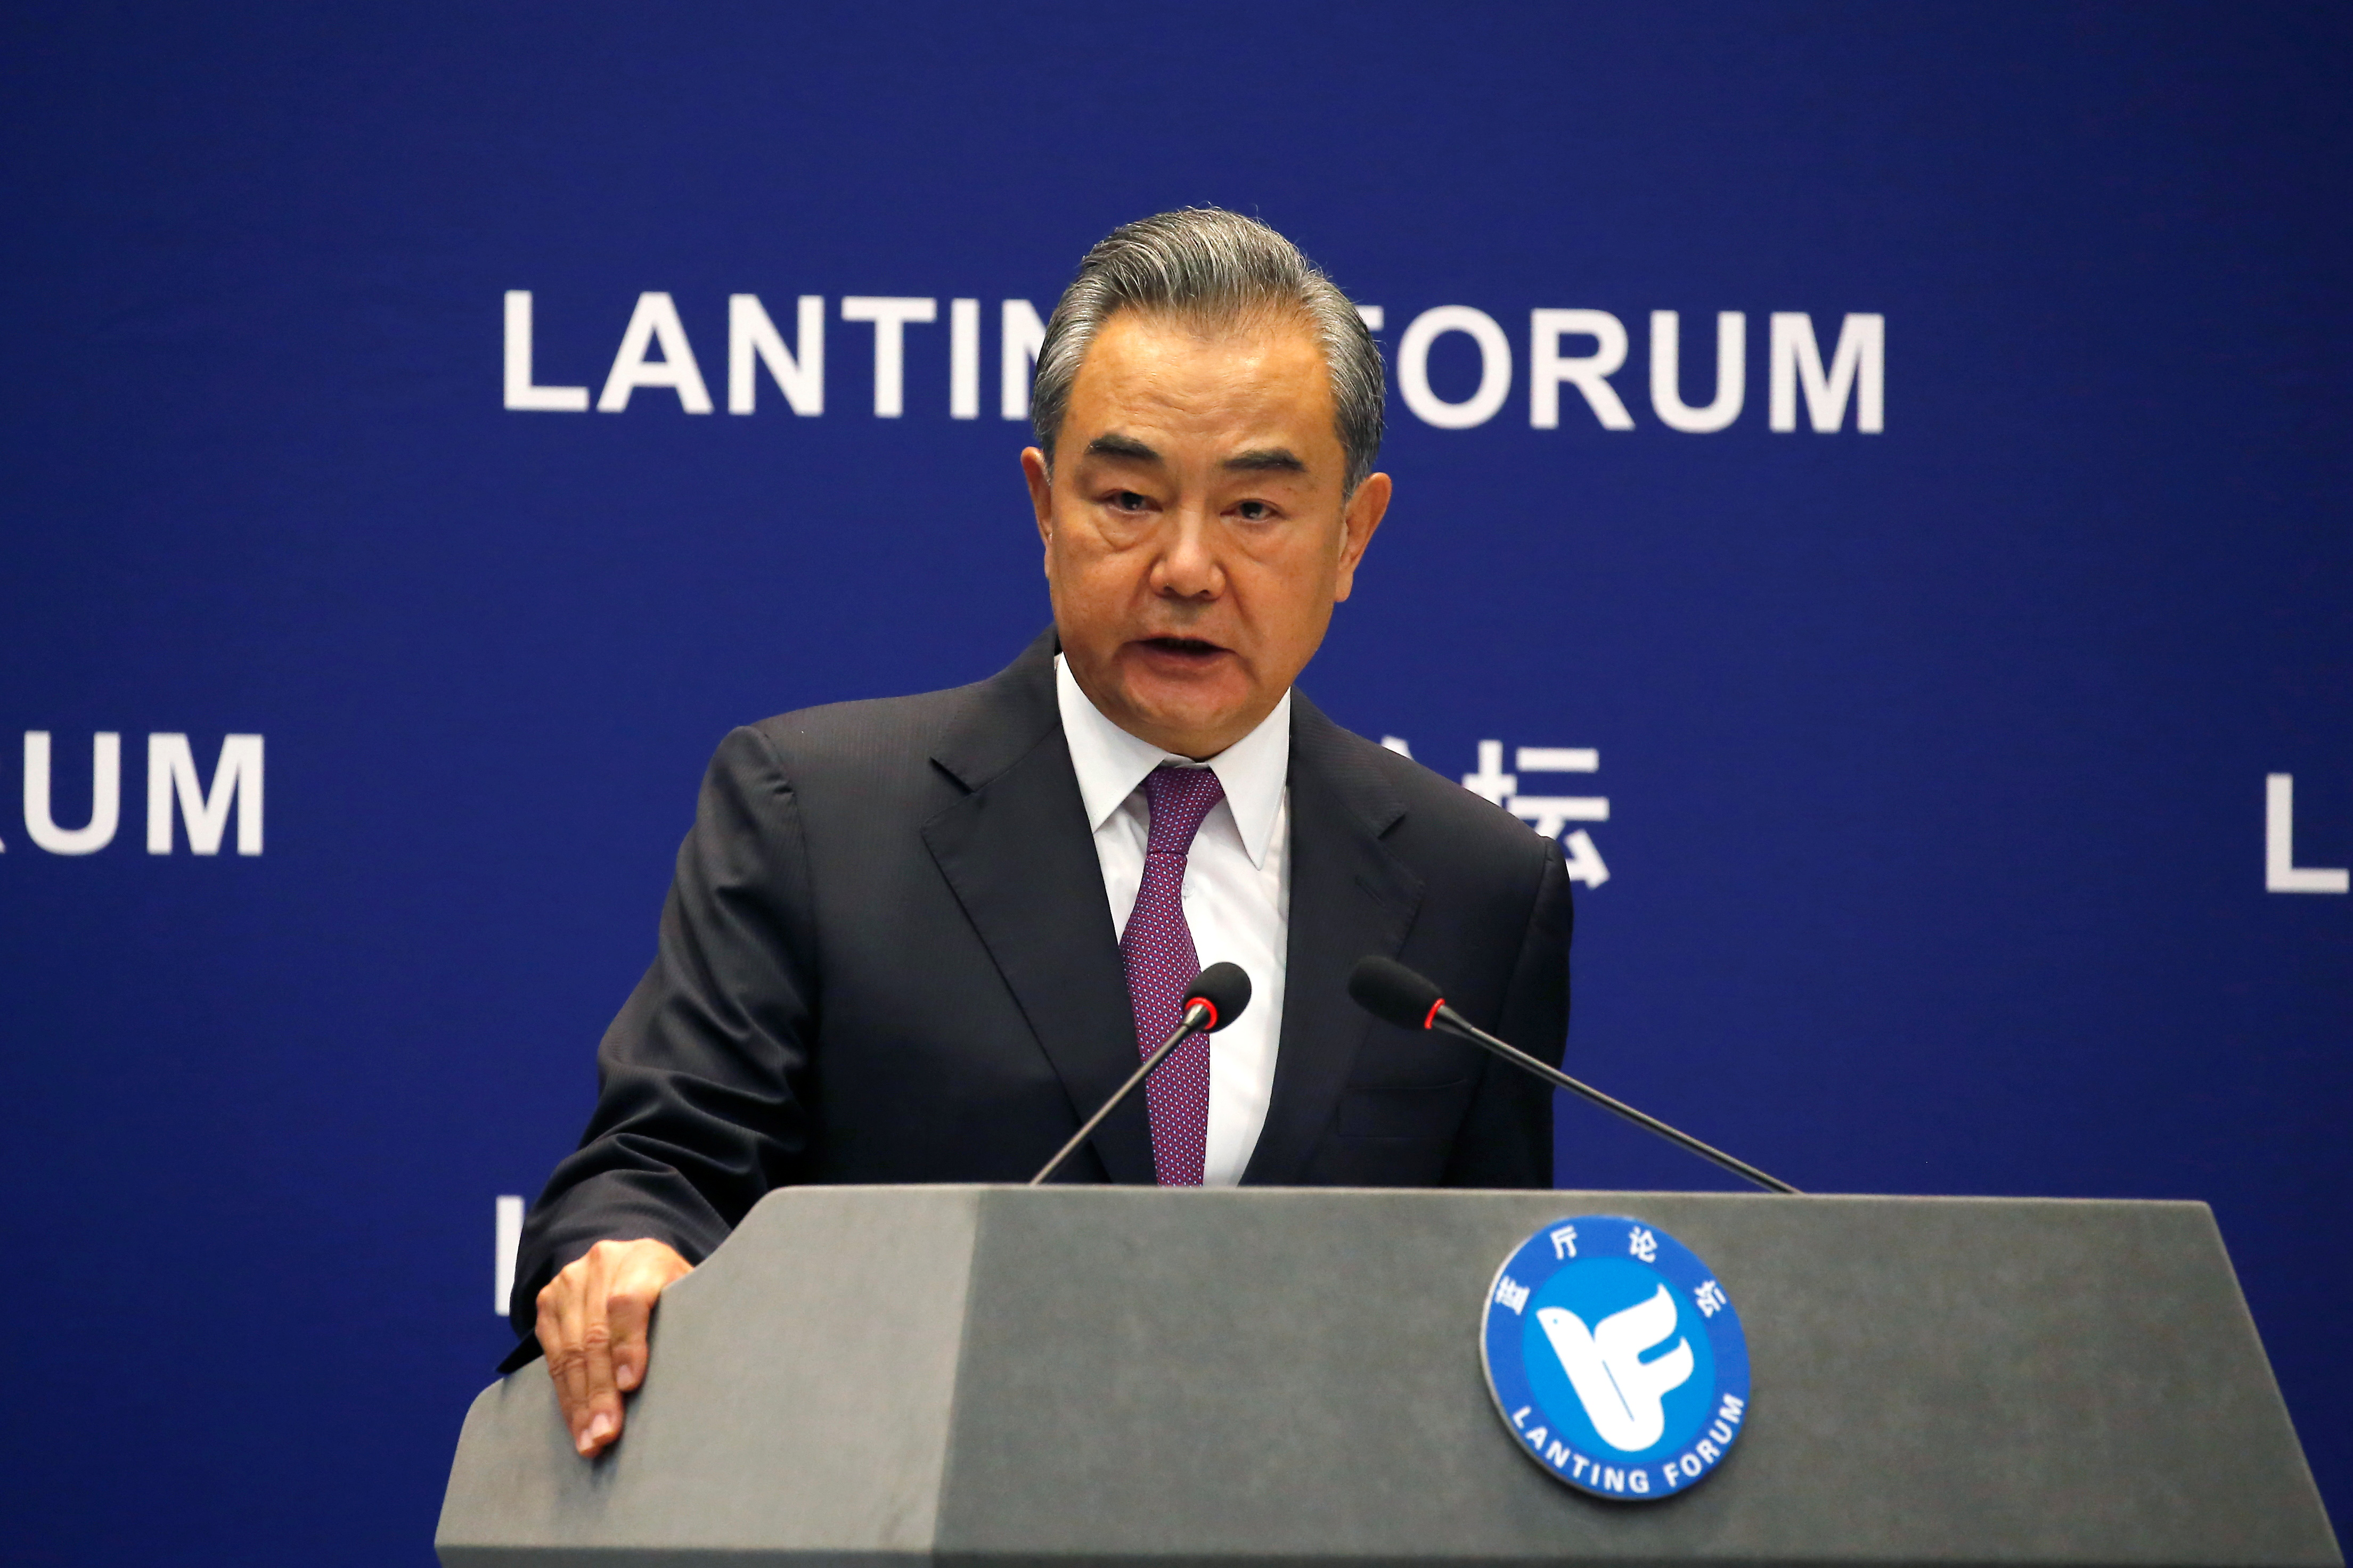 Chinese State Councillor and Foreign Minister Wang Yi speaks at a Lanting Forum with the theme